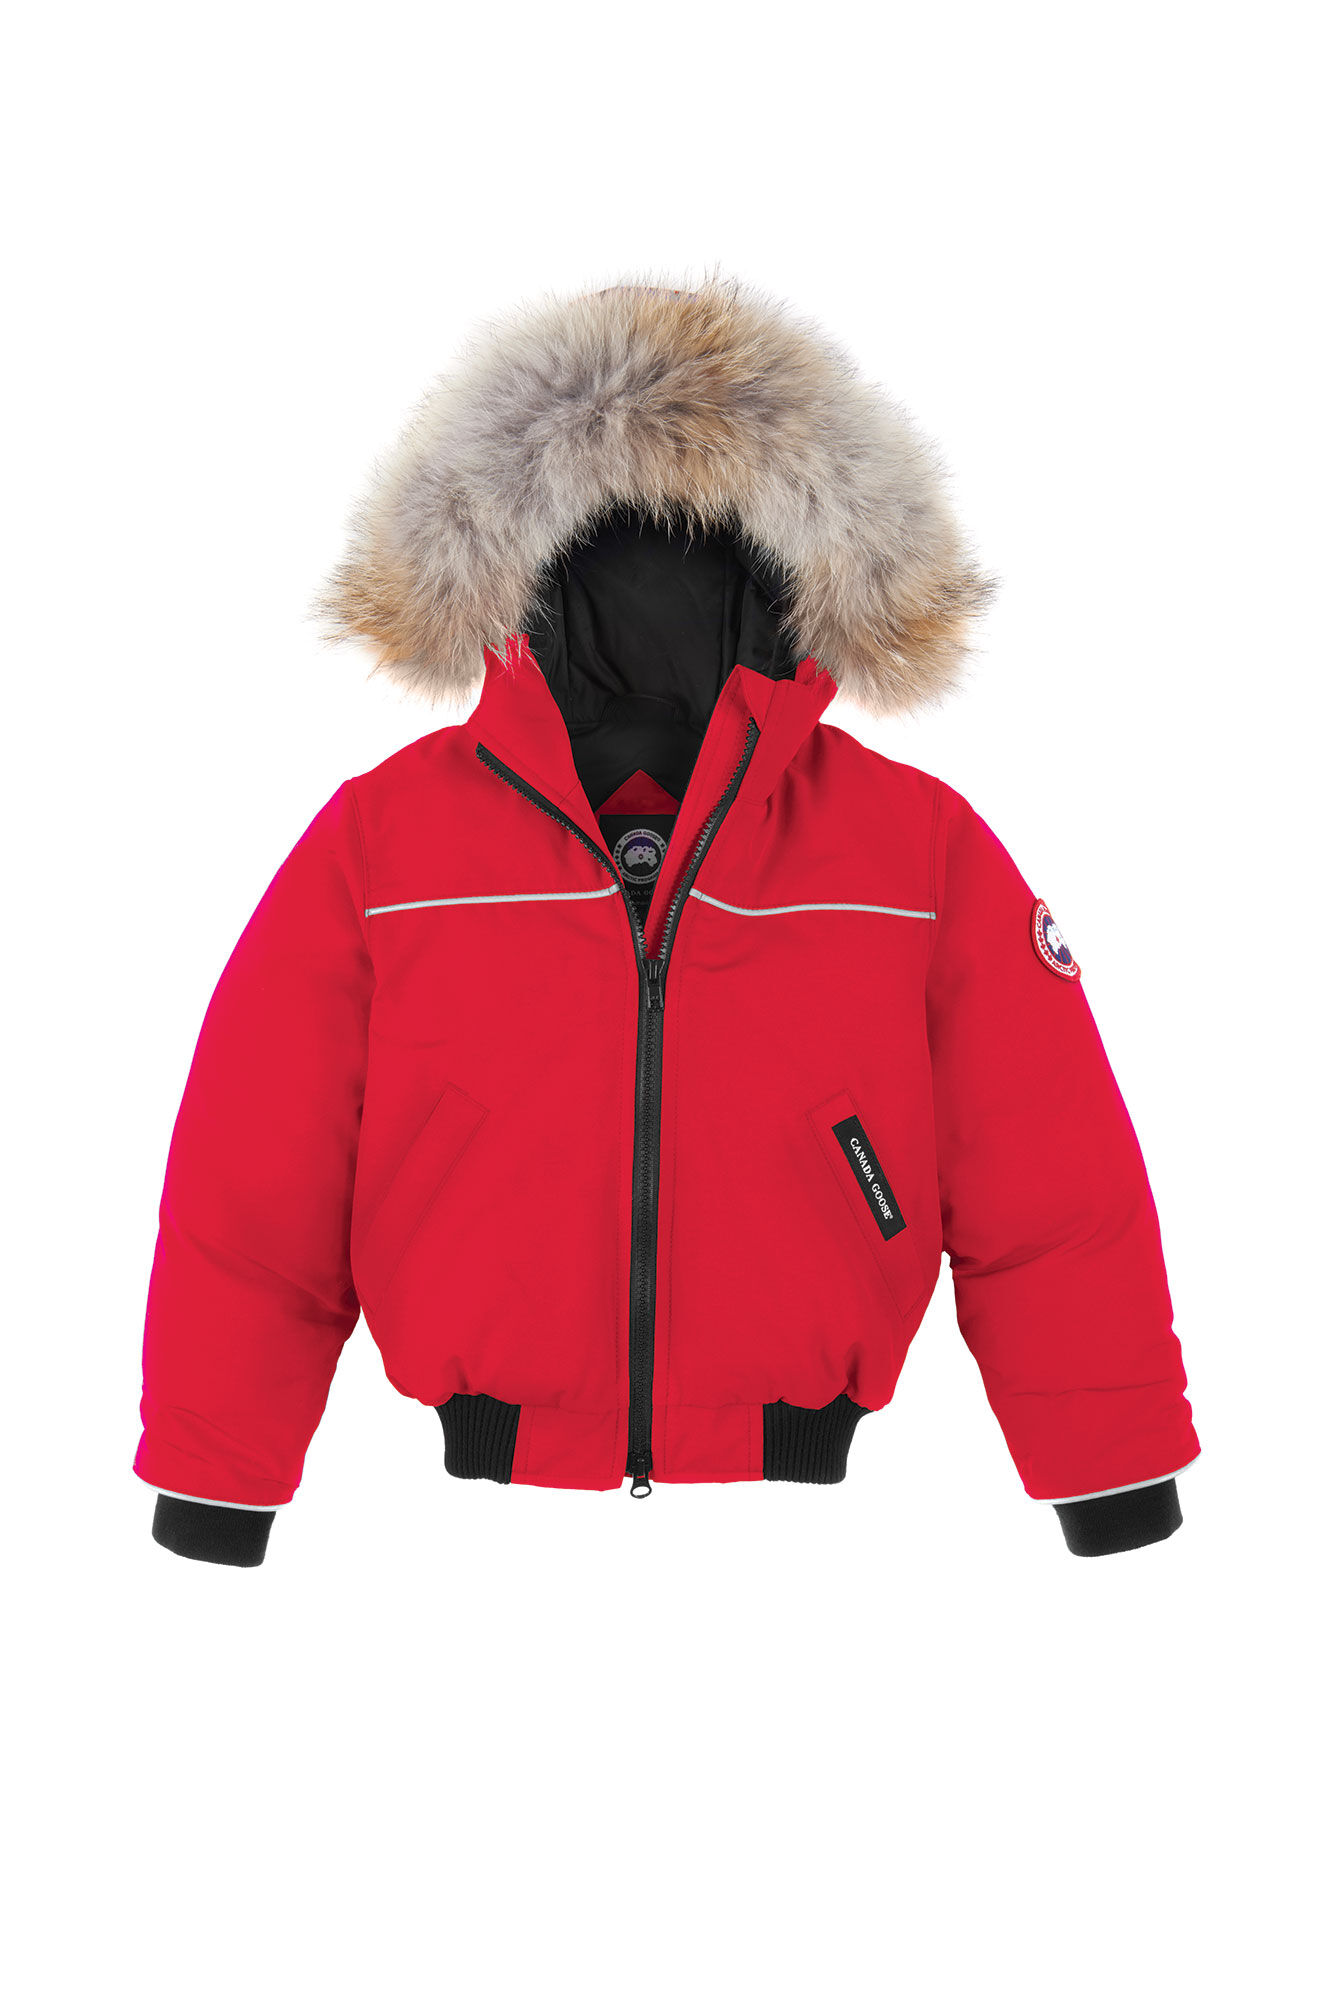 Canada Goose' official youth